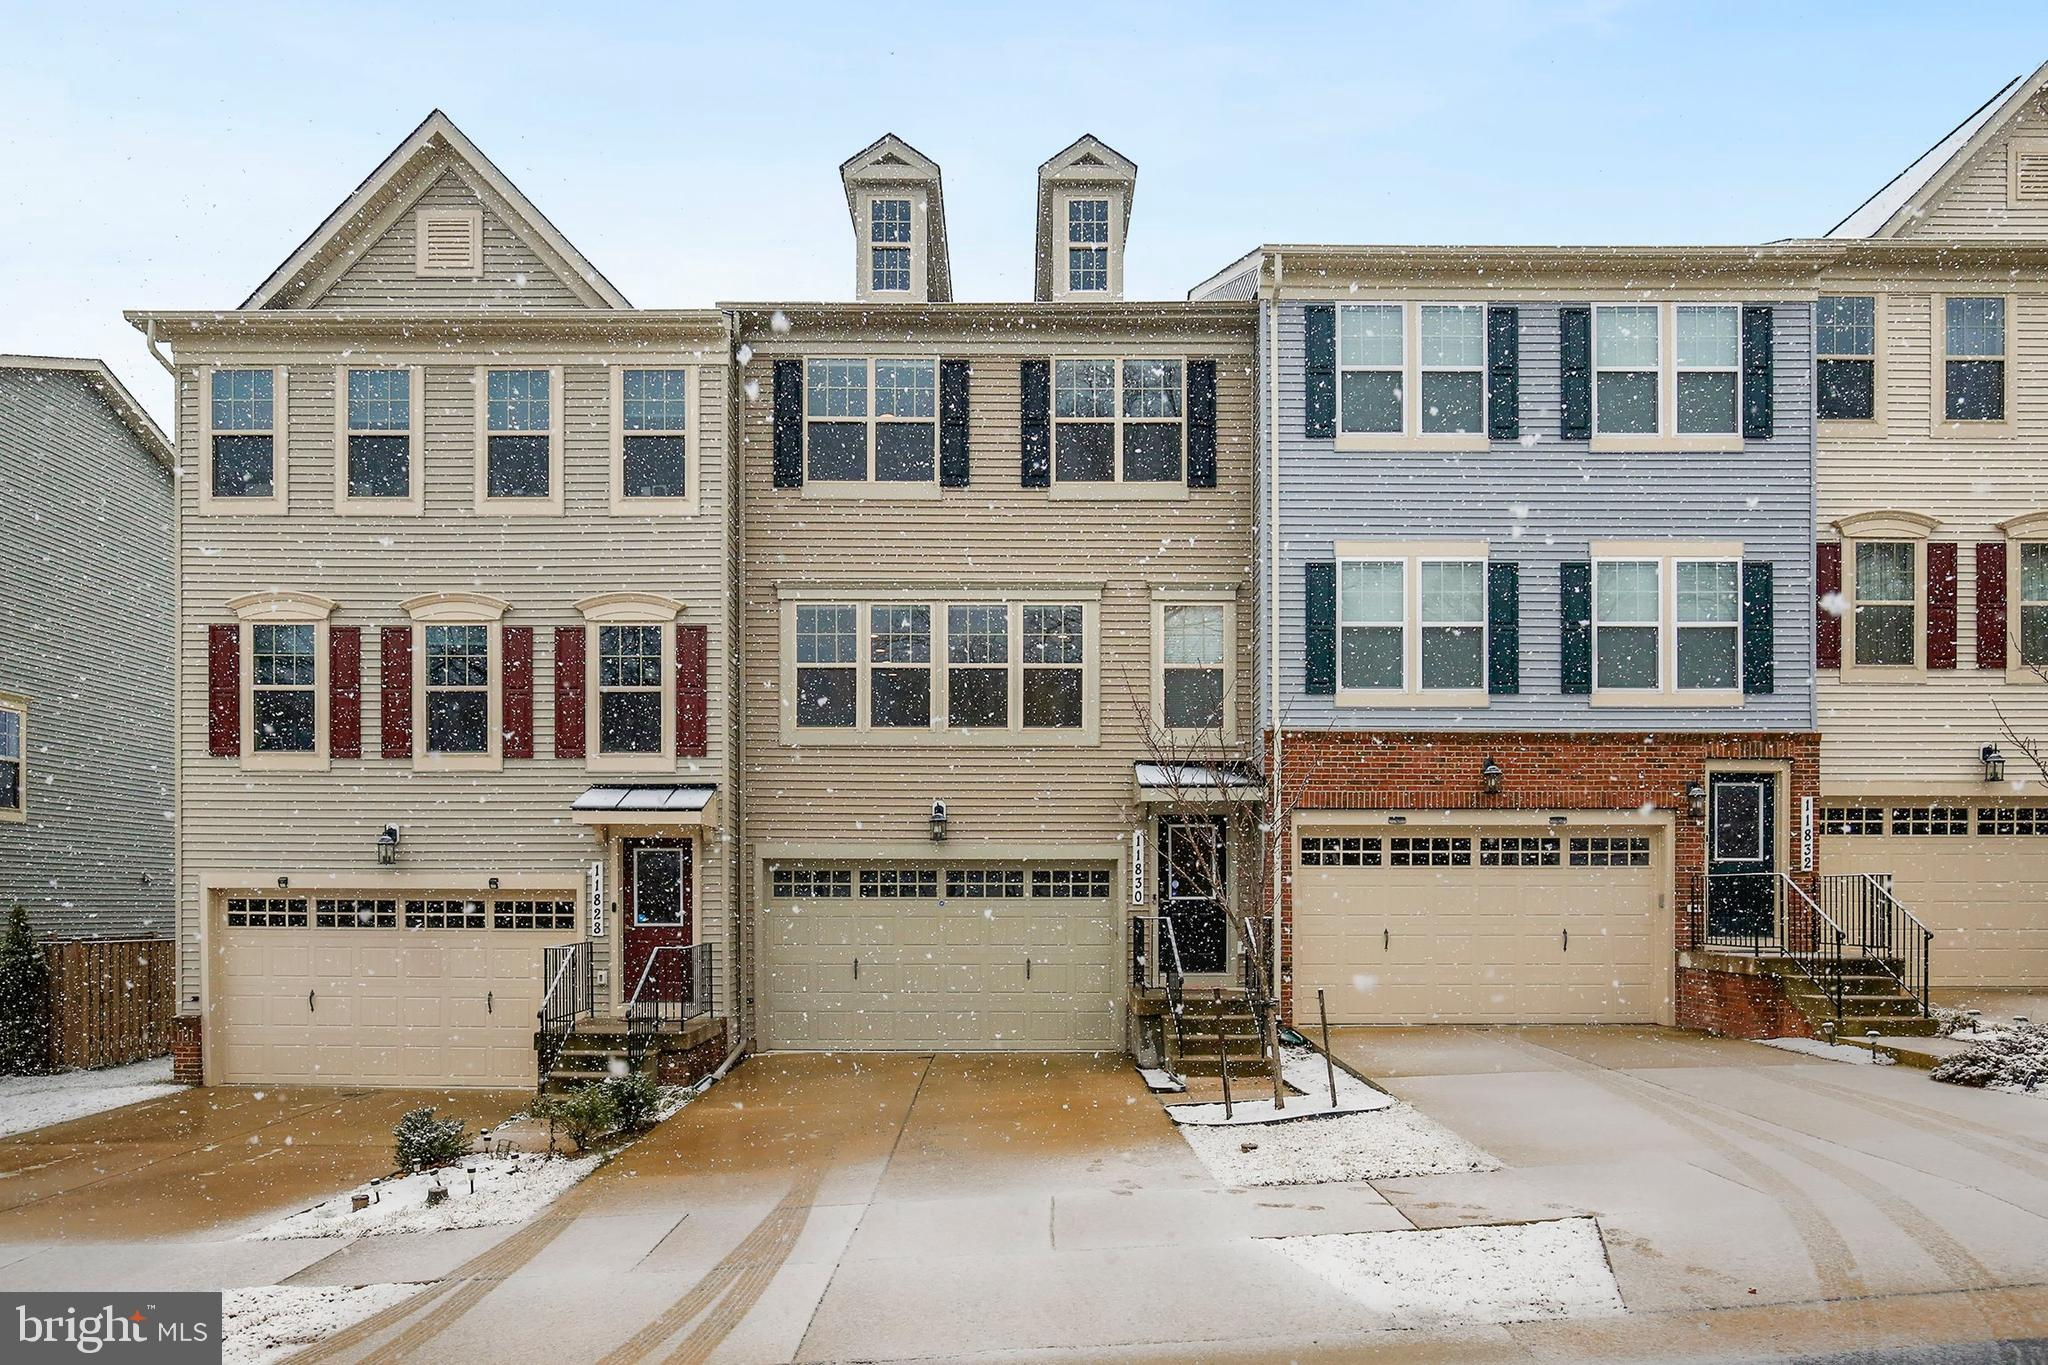 11830 BOLAND MANOR DRIVE, GERMANTOWN, MD 20876